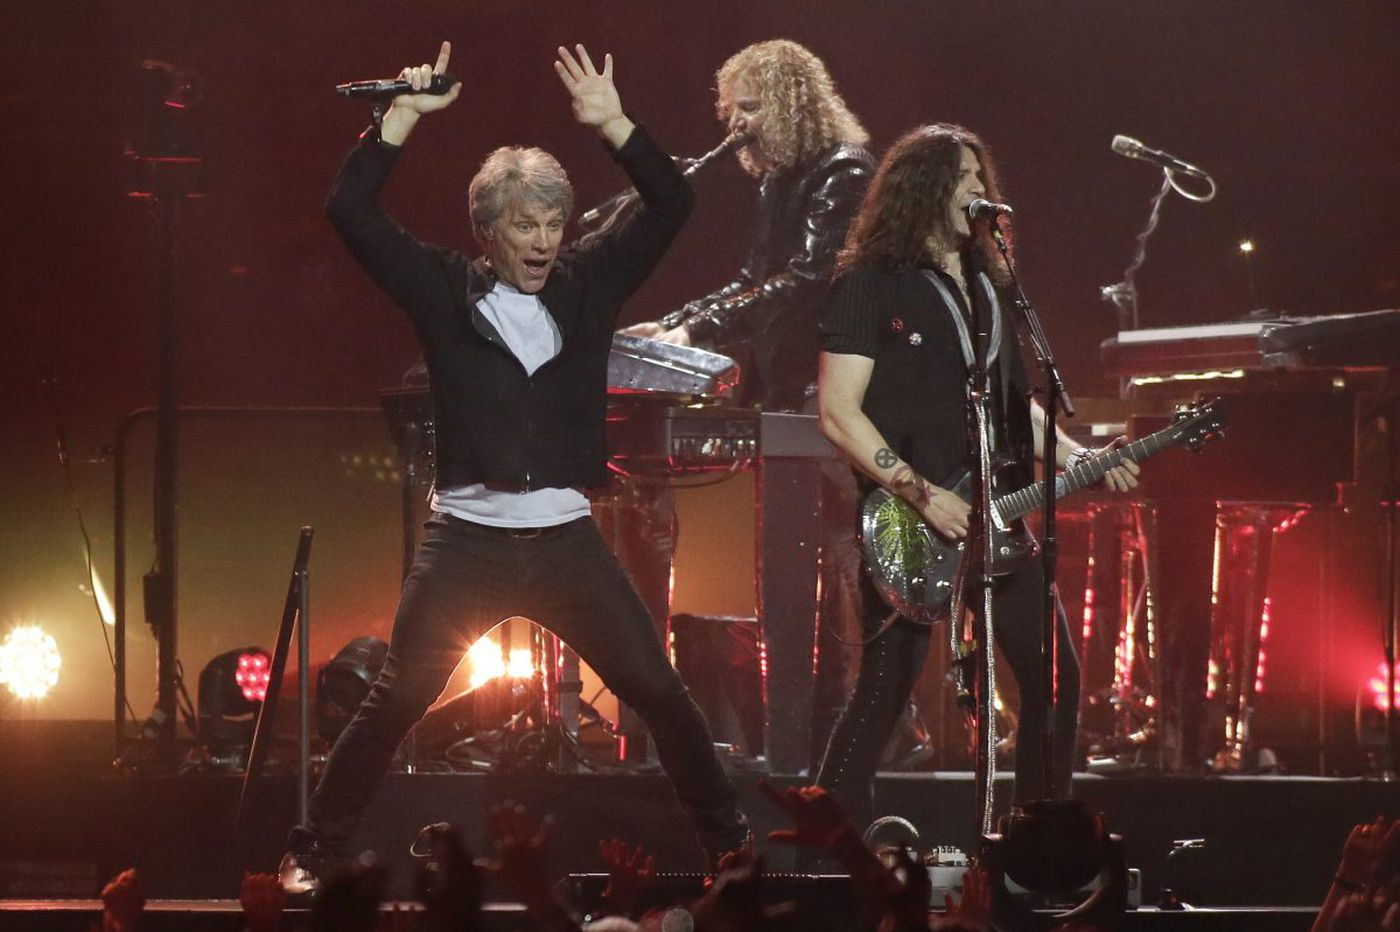 Bon Jovi celebrates WMMR's 50th birthday at the Wells Fargo Center